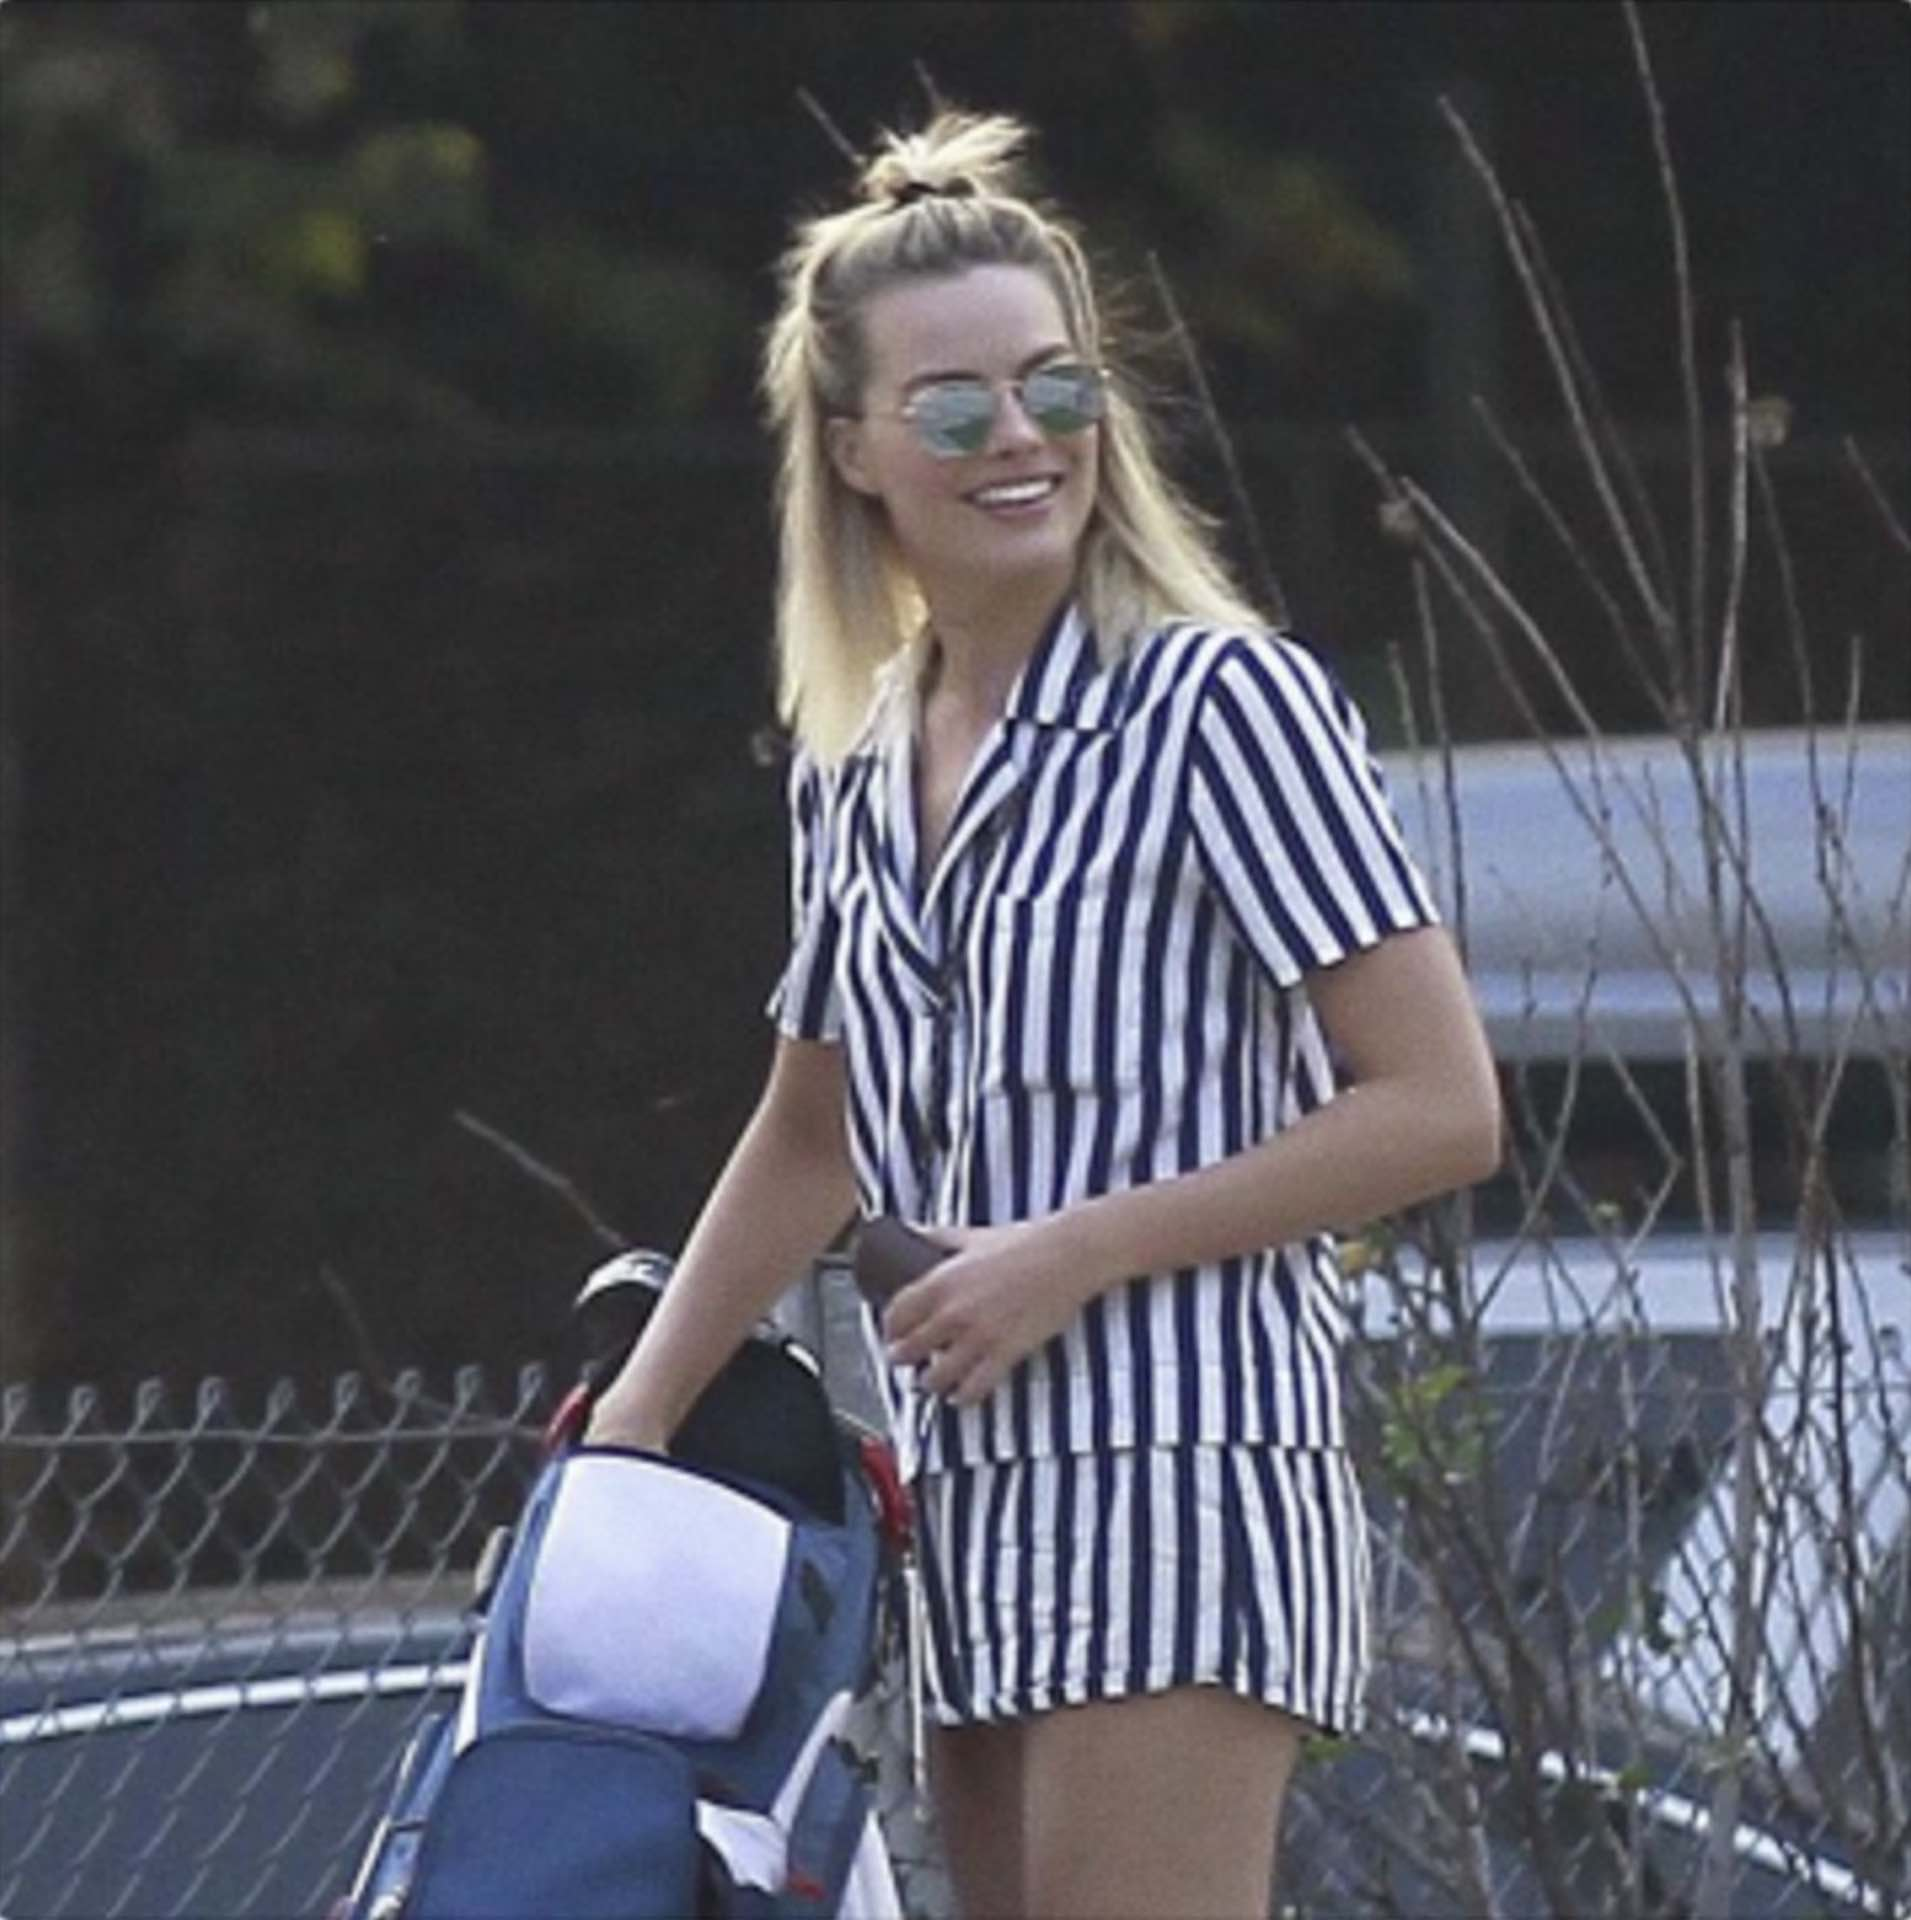 Actress Margot Robbie swings the wrenches